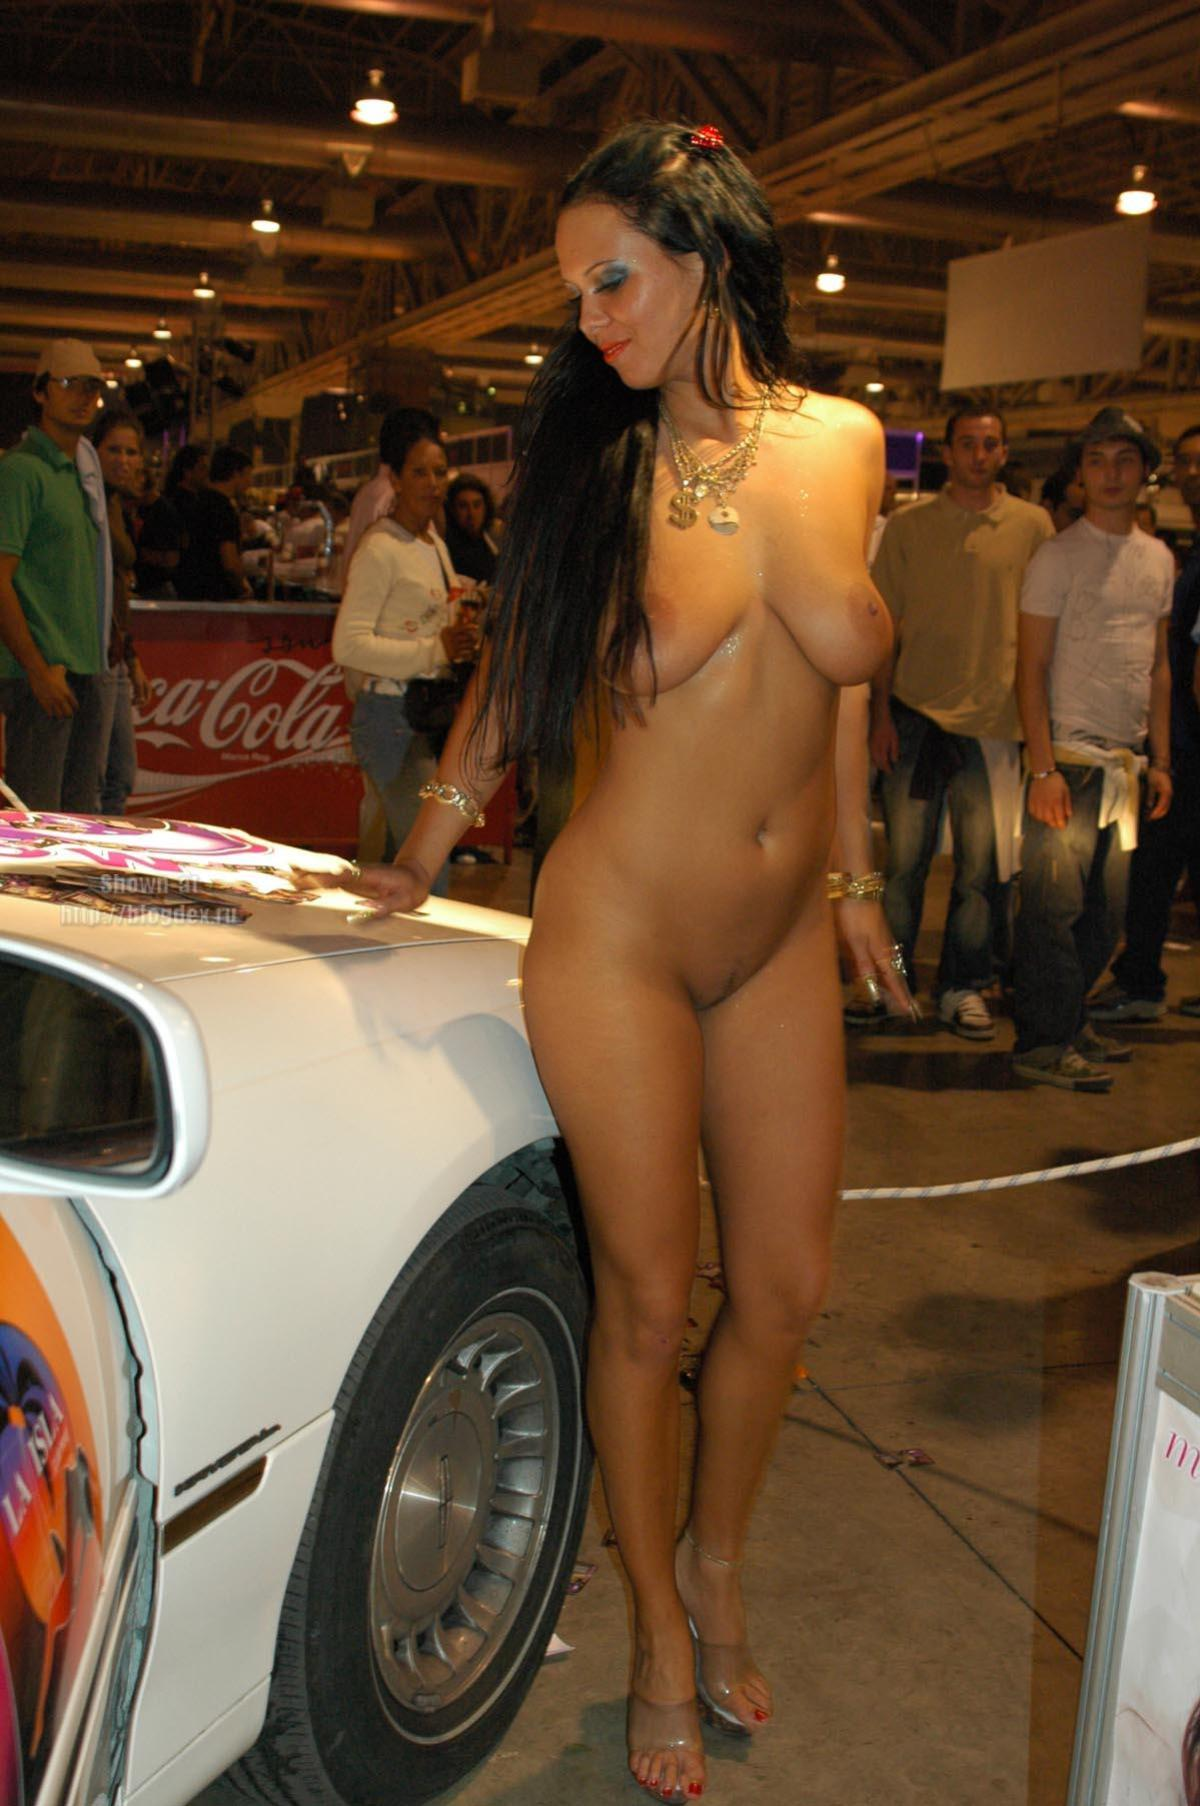 Does not Nude babes and cars peachy share